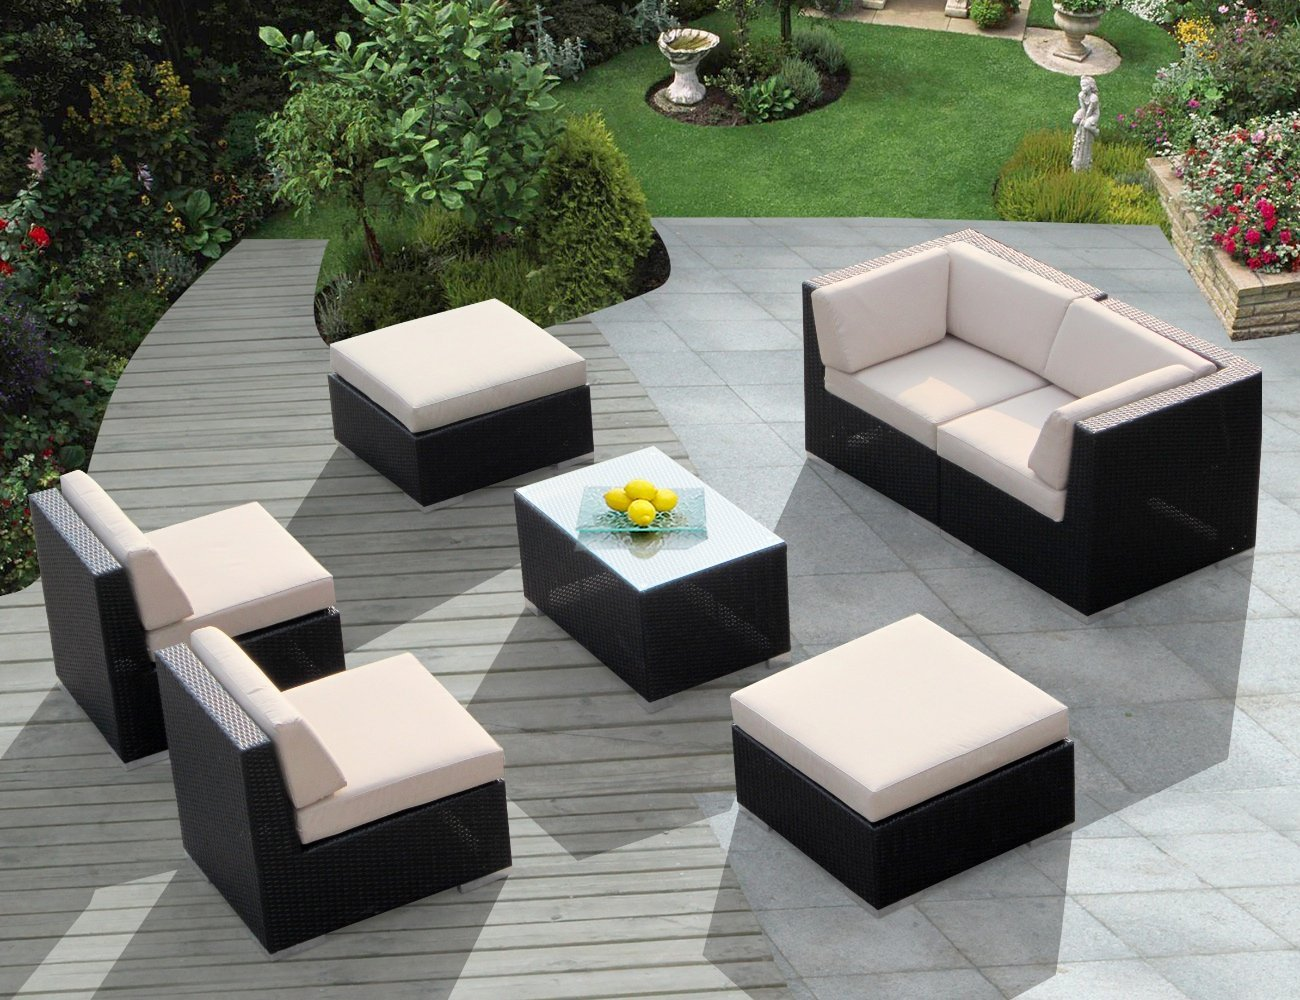 Simple Genuine Ohana Outdoor Wicker Furniture 7pc Couch Set With Beige Cushion wicker outdoor furniture sets